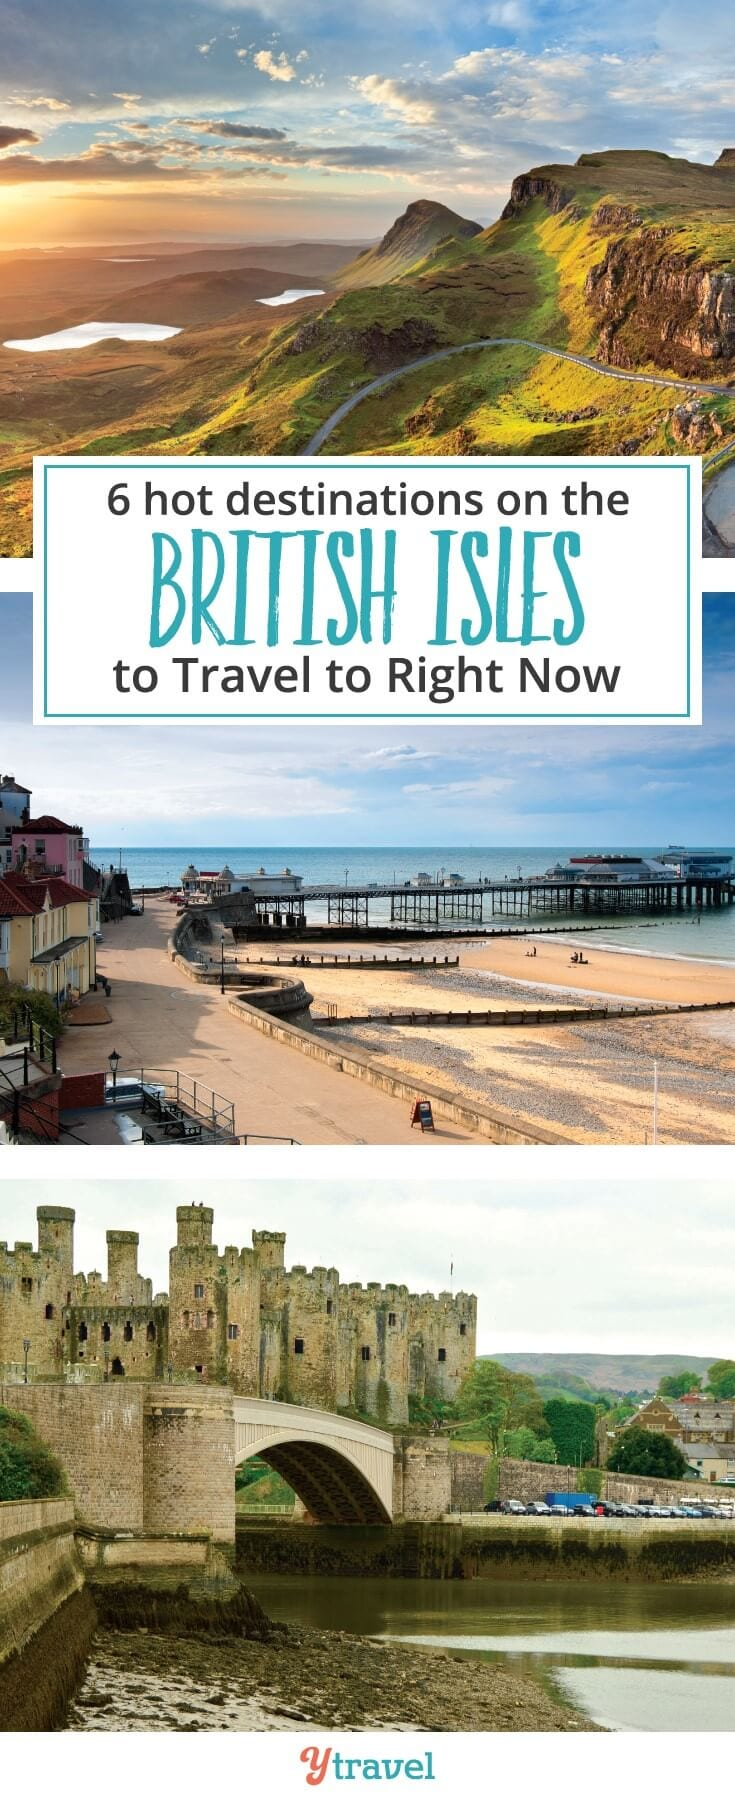 Planning to travel to the UK? Check out these 6 hot destinations on the British Isles to travel to right now. Climbing Mt Snowdon Scotland was a UK highlight for me.